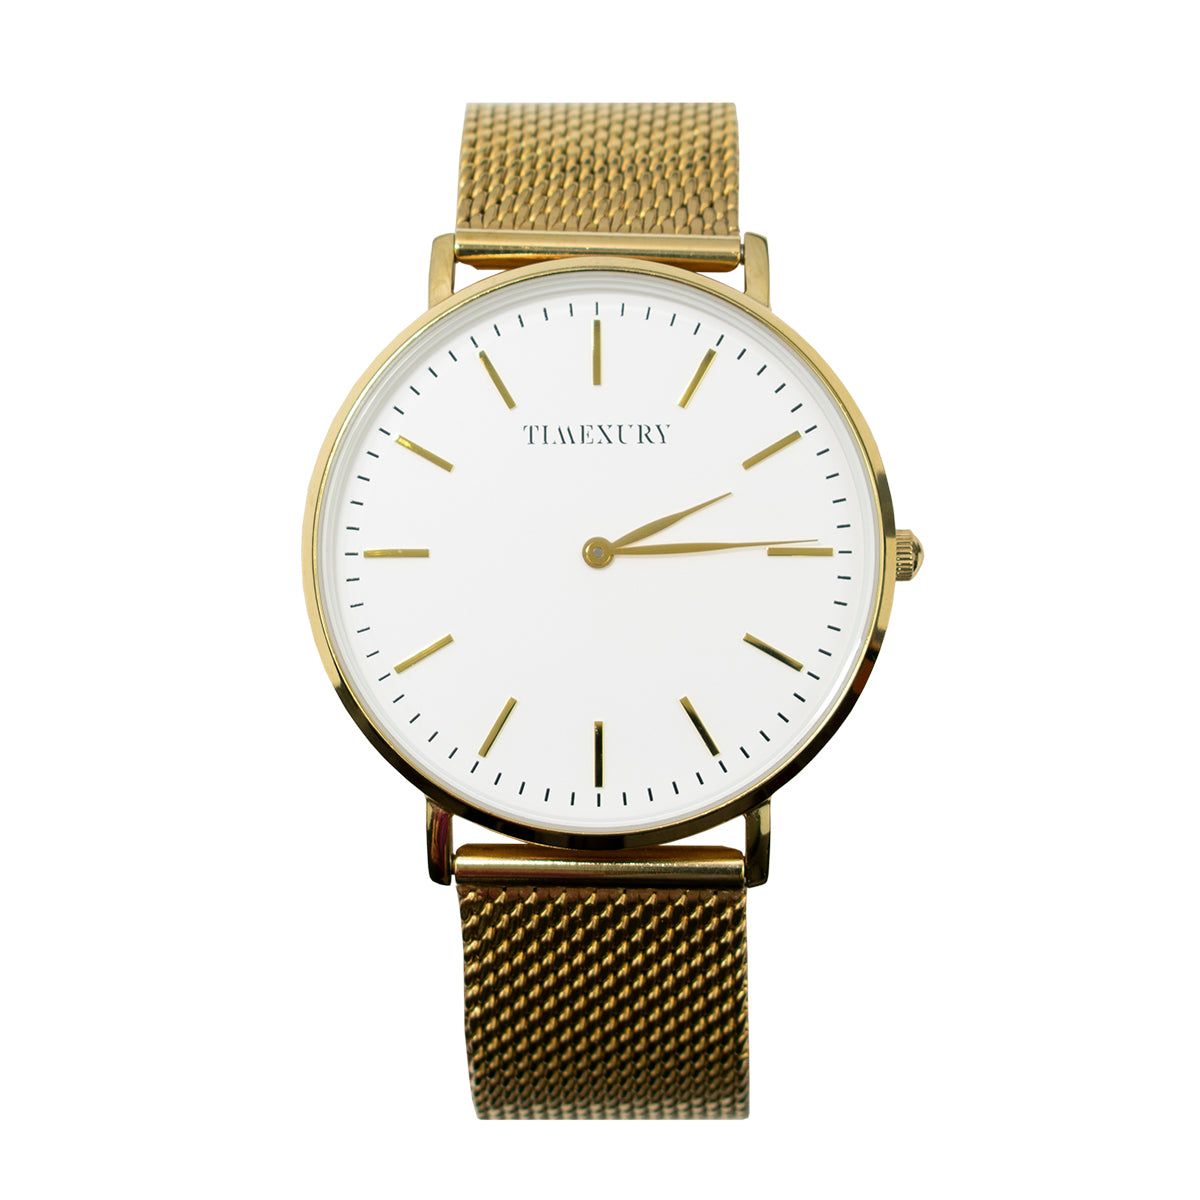 Gold Classy - TimexuryWatches